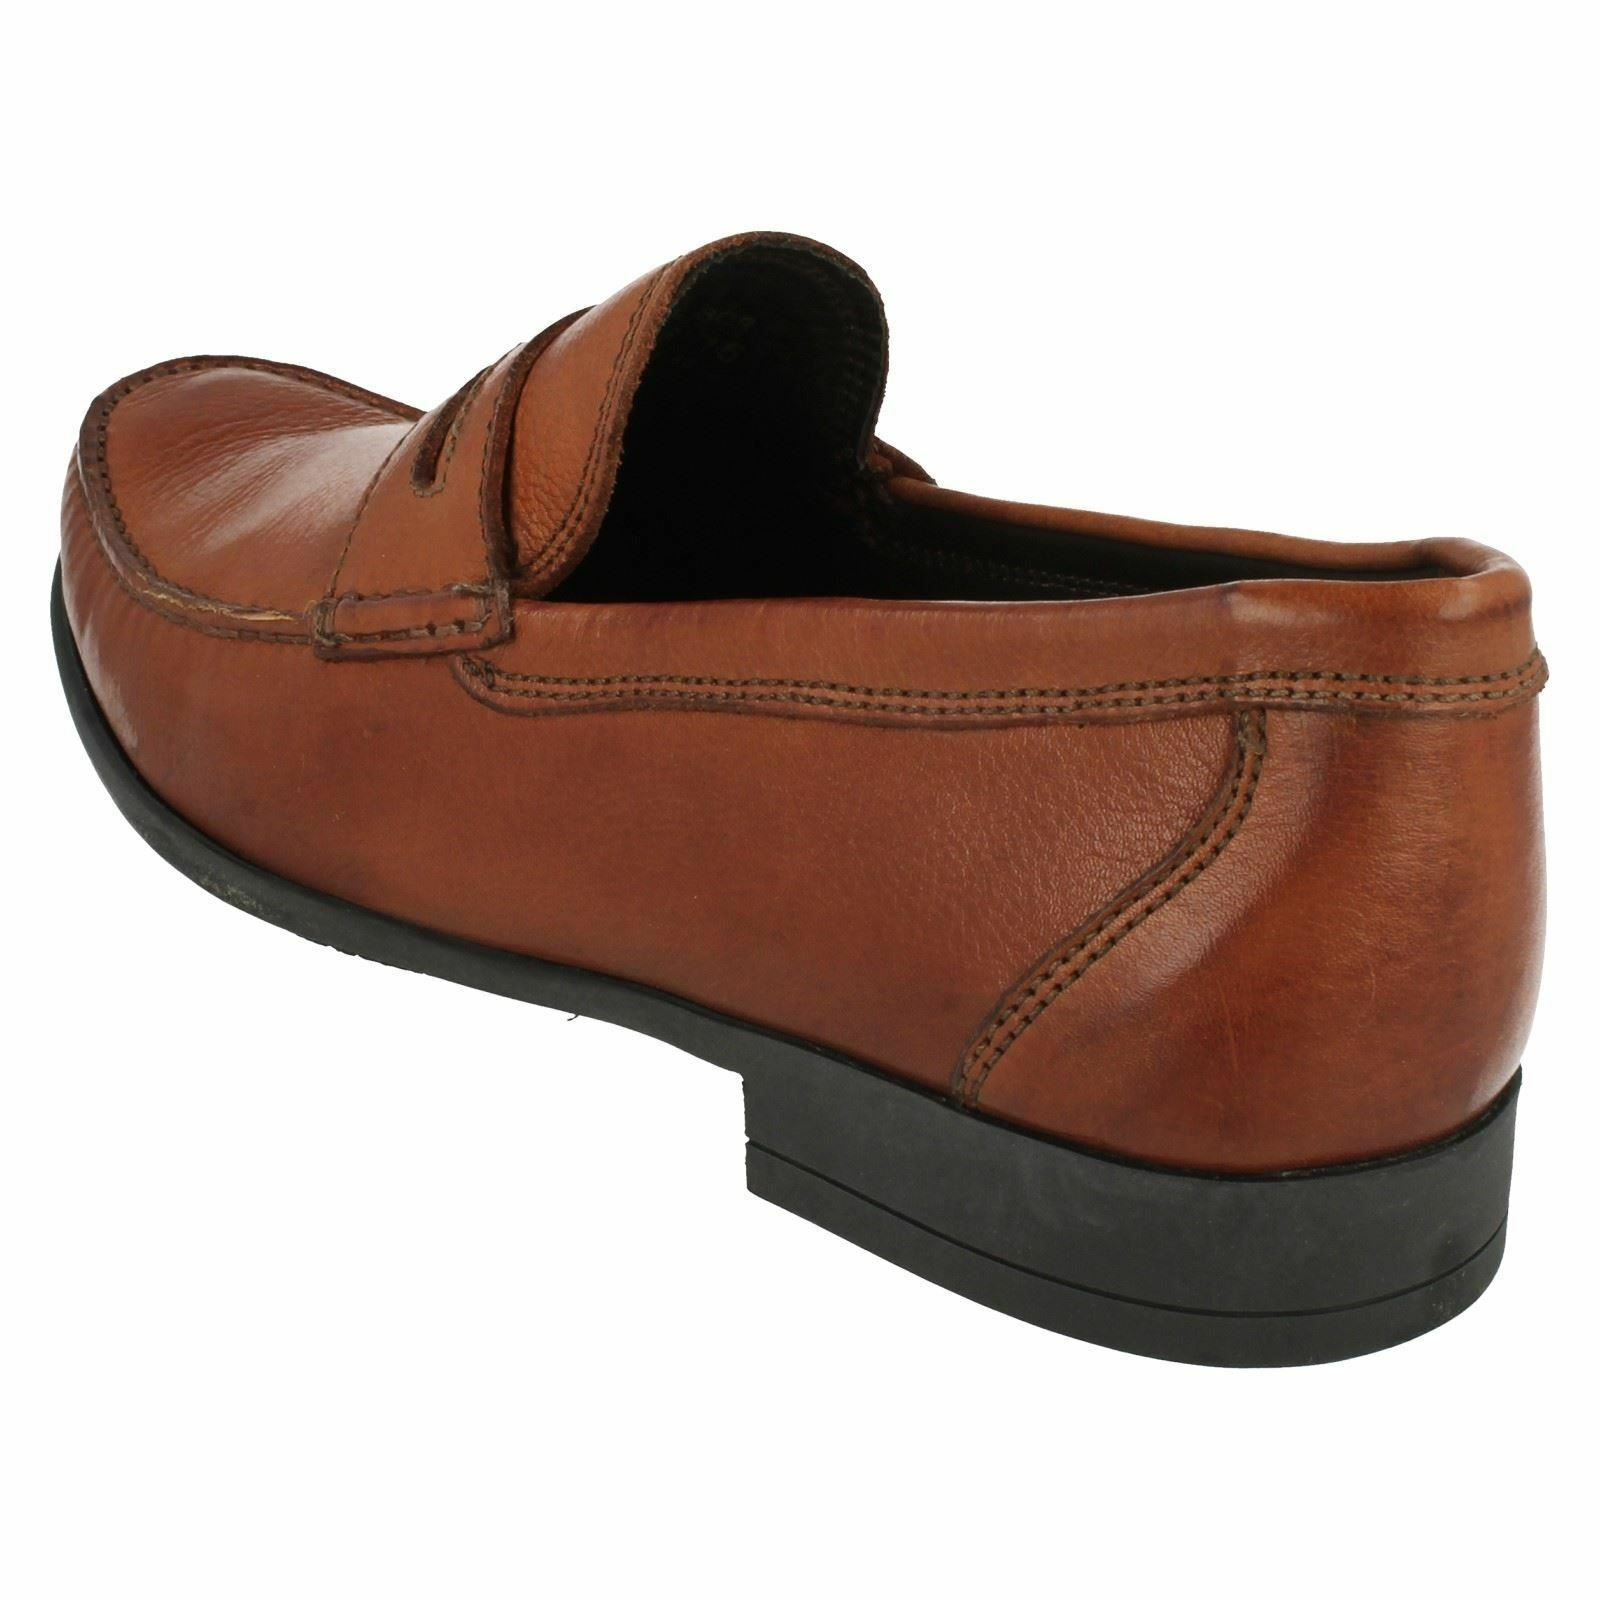 Herren Anatomic & Co Castelo 838301 Slip Tan Toast Leder Slip 838301 On Schuhes 714cef